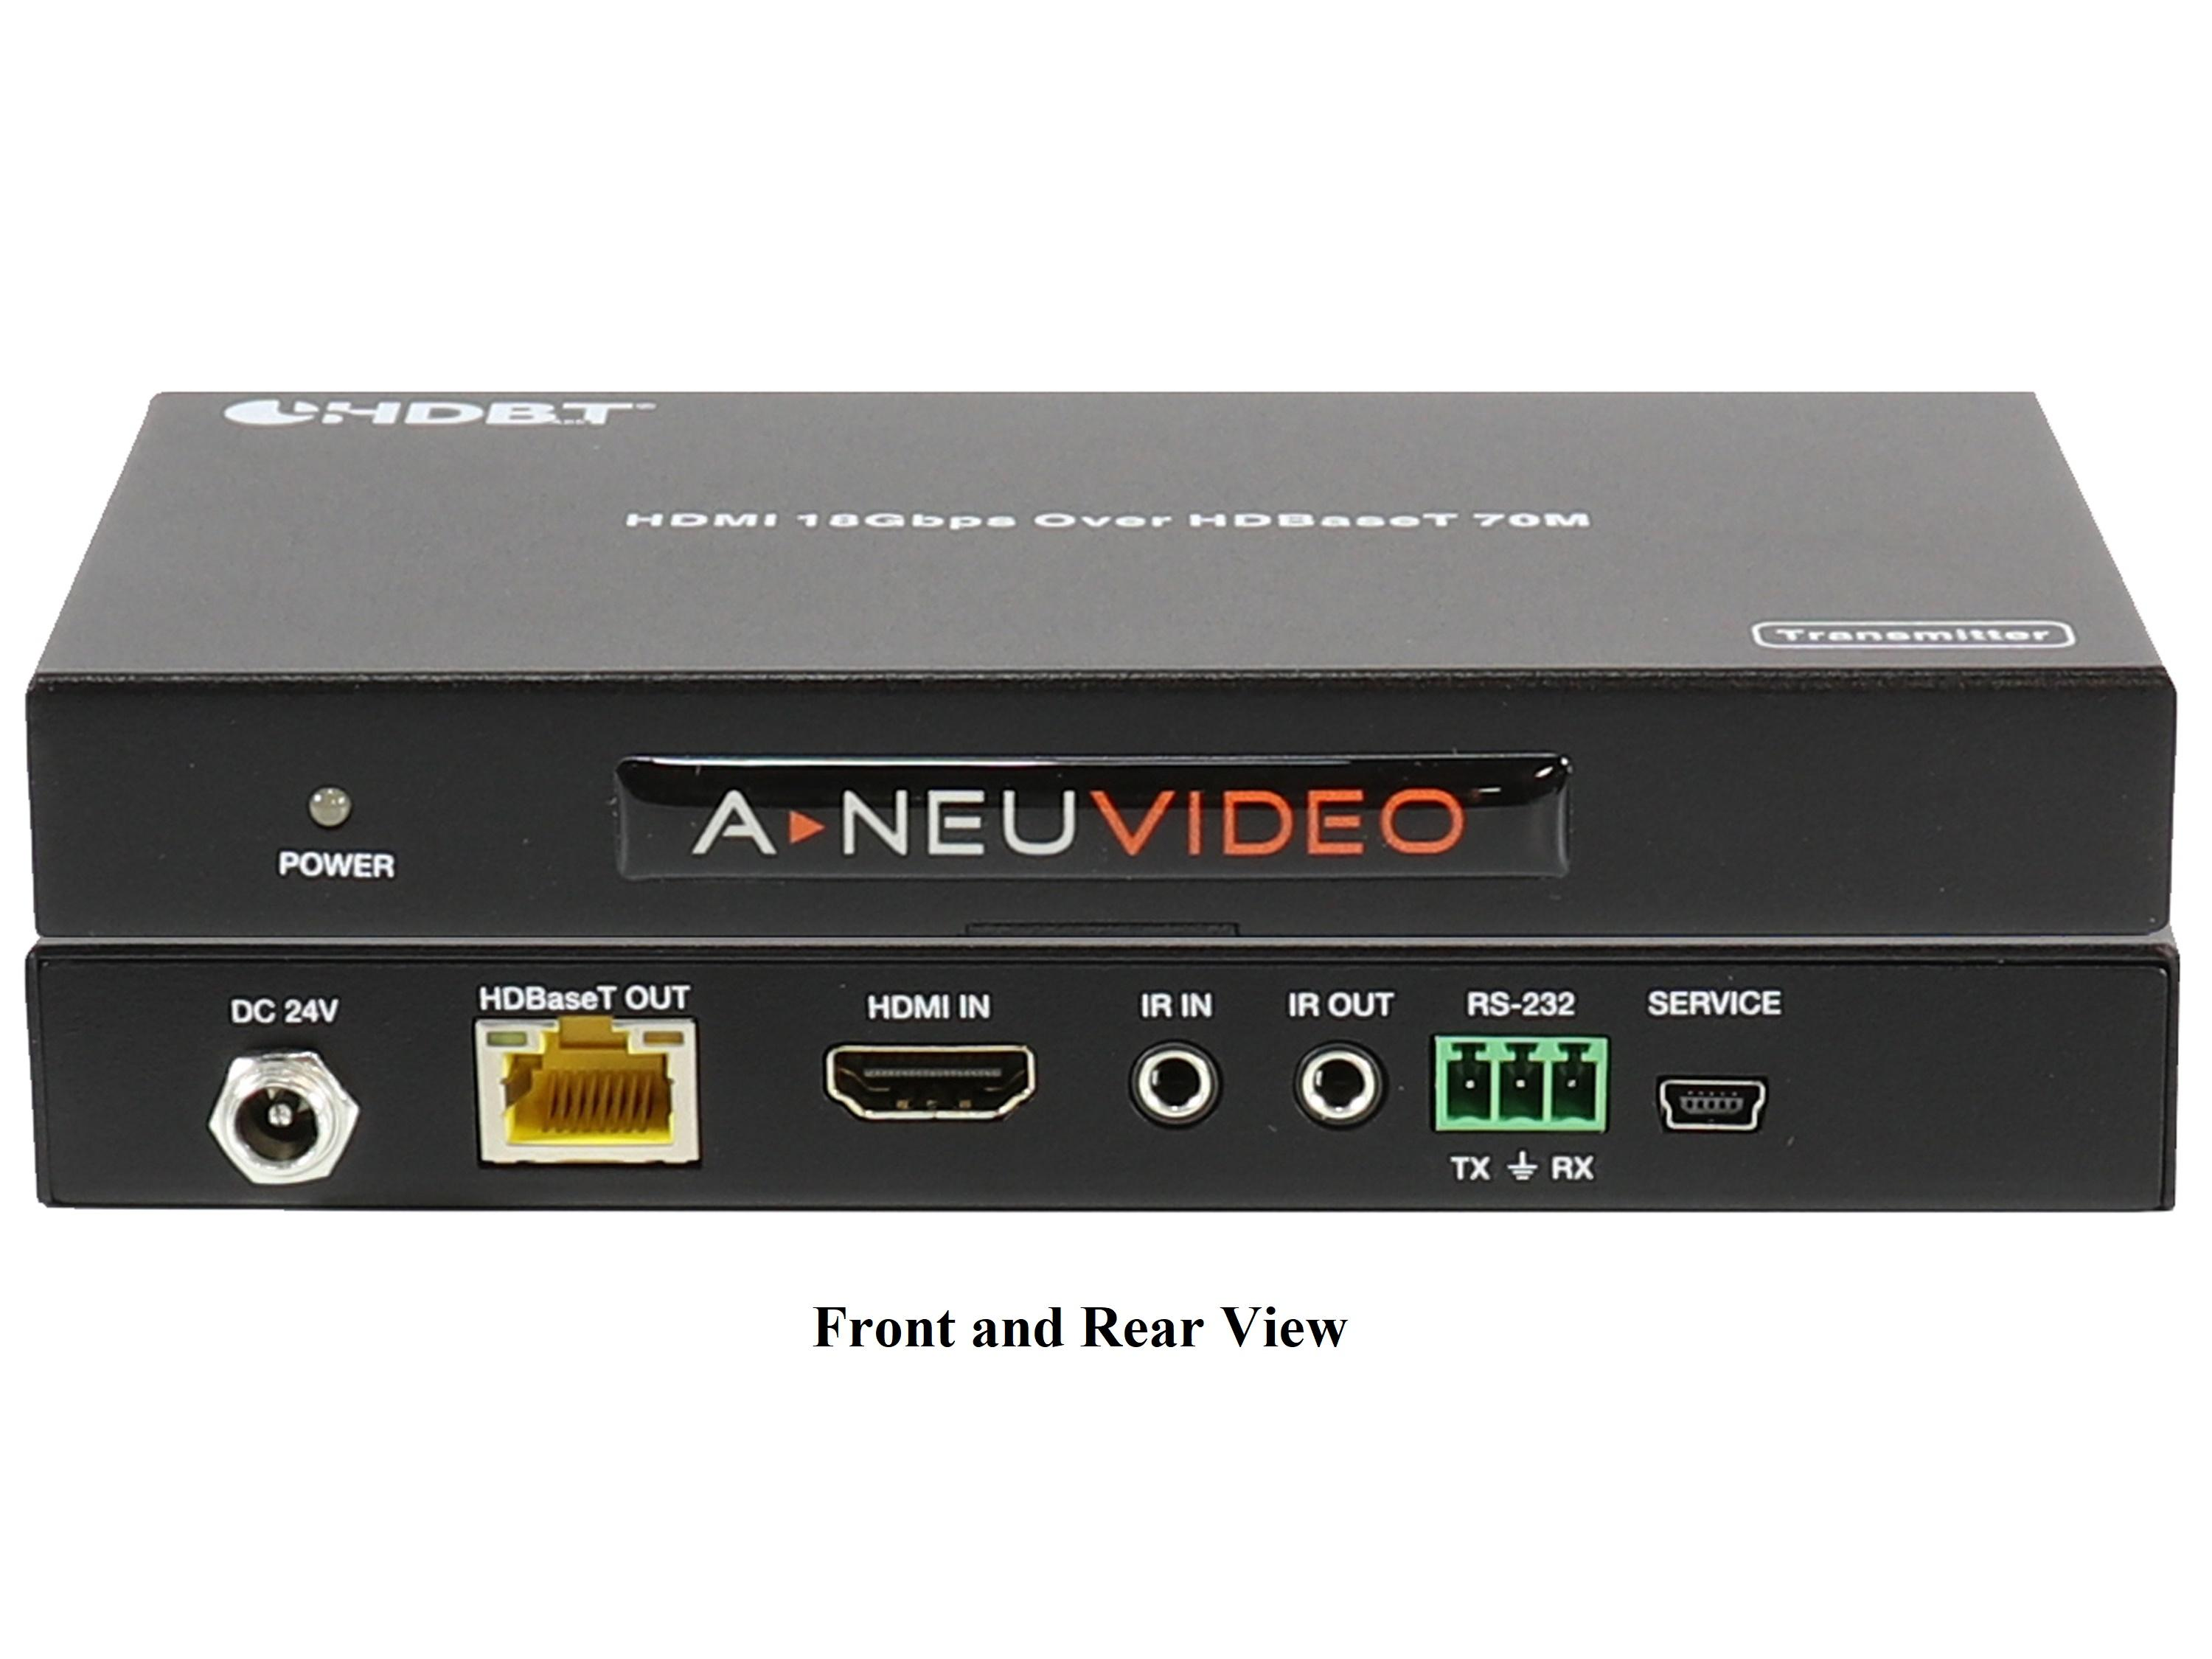 A-NeuVideo ANI-HDR-70 HDMI 4K HDR 18Gbps PoH Extender (Transmitter/Receiver) Kit over Cat5e/6  (230ft/70m)